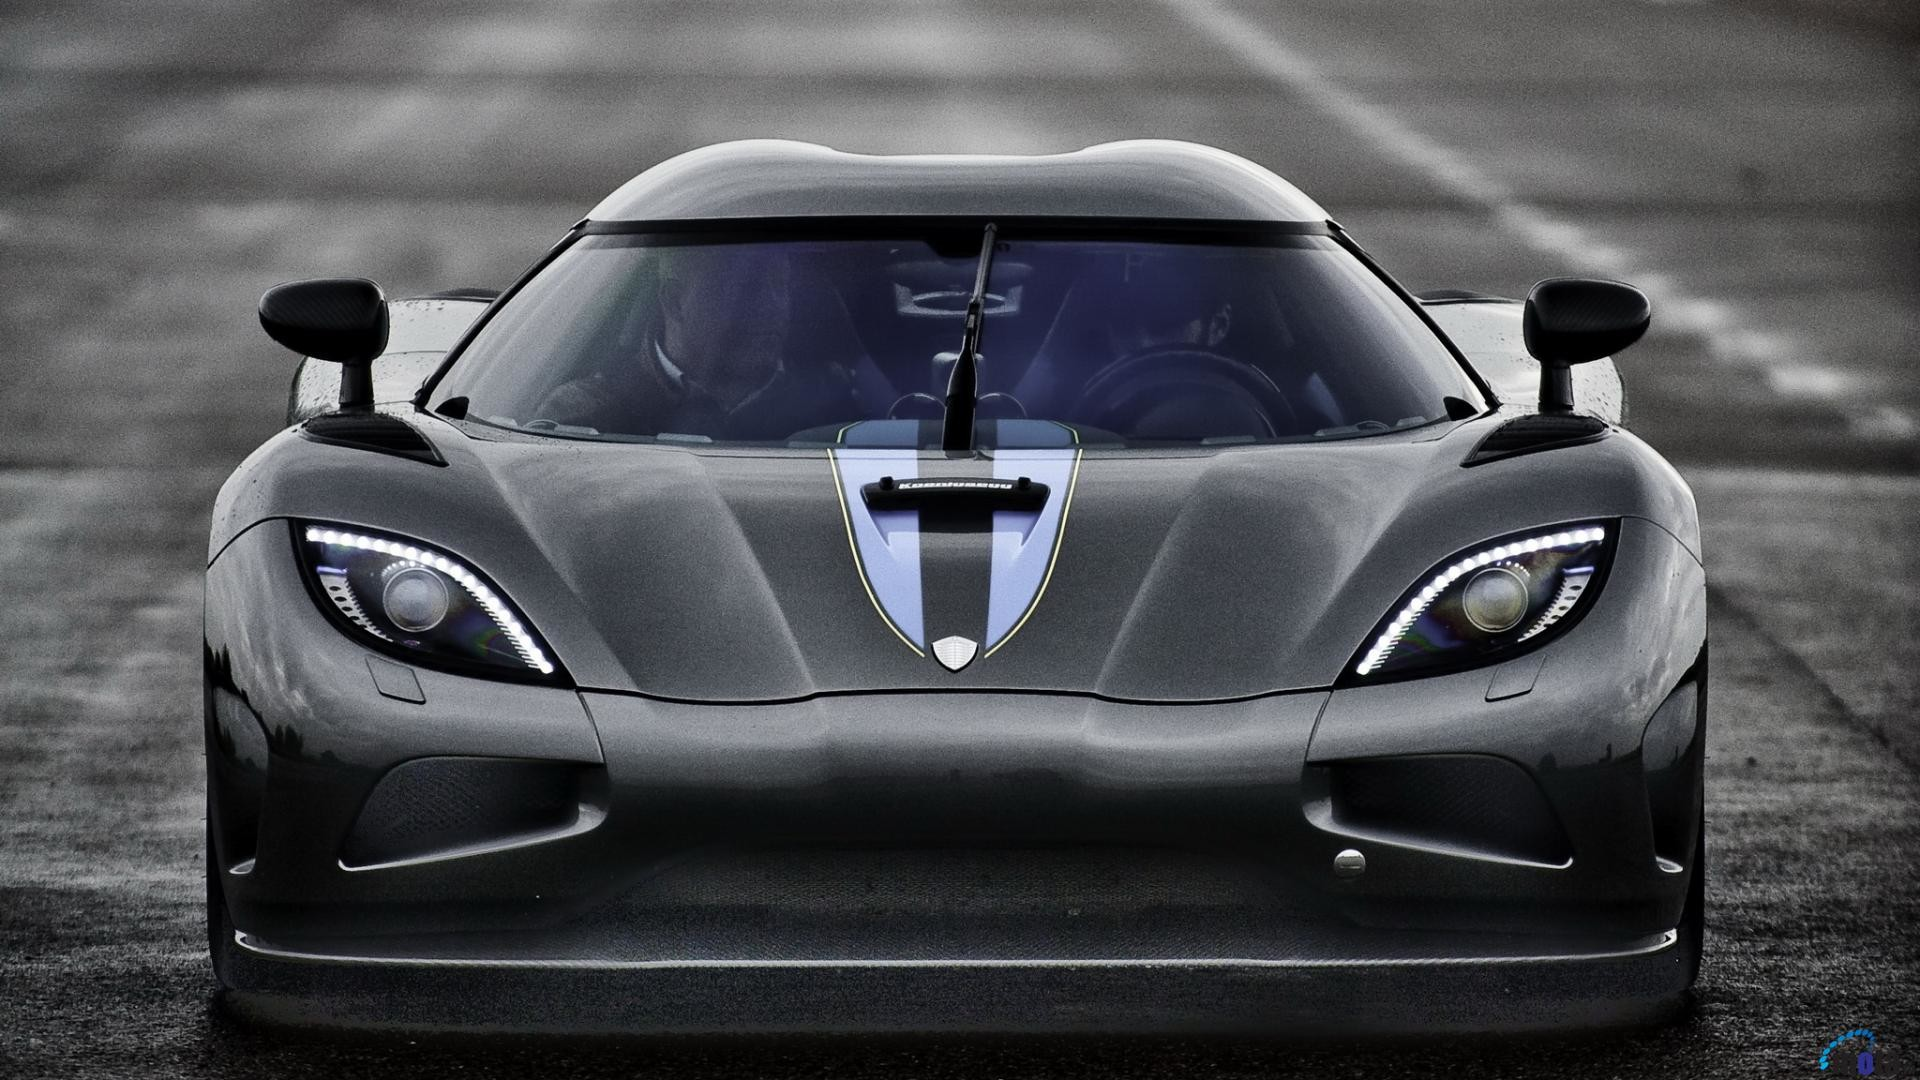 1920x1080 view big size  Koenigsegg Agera R Wallpaper